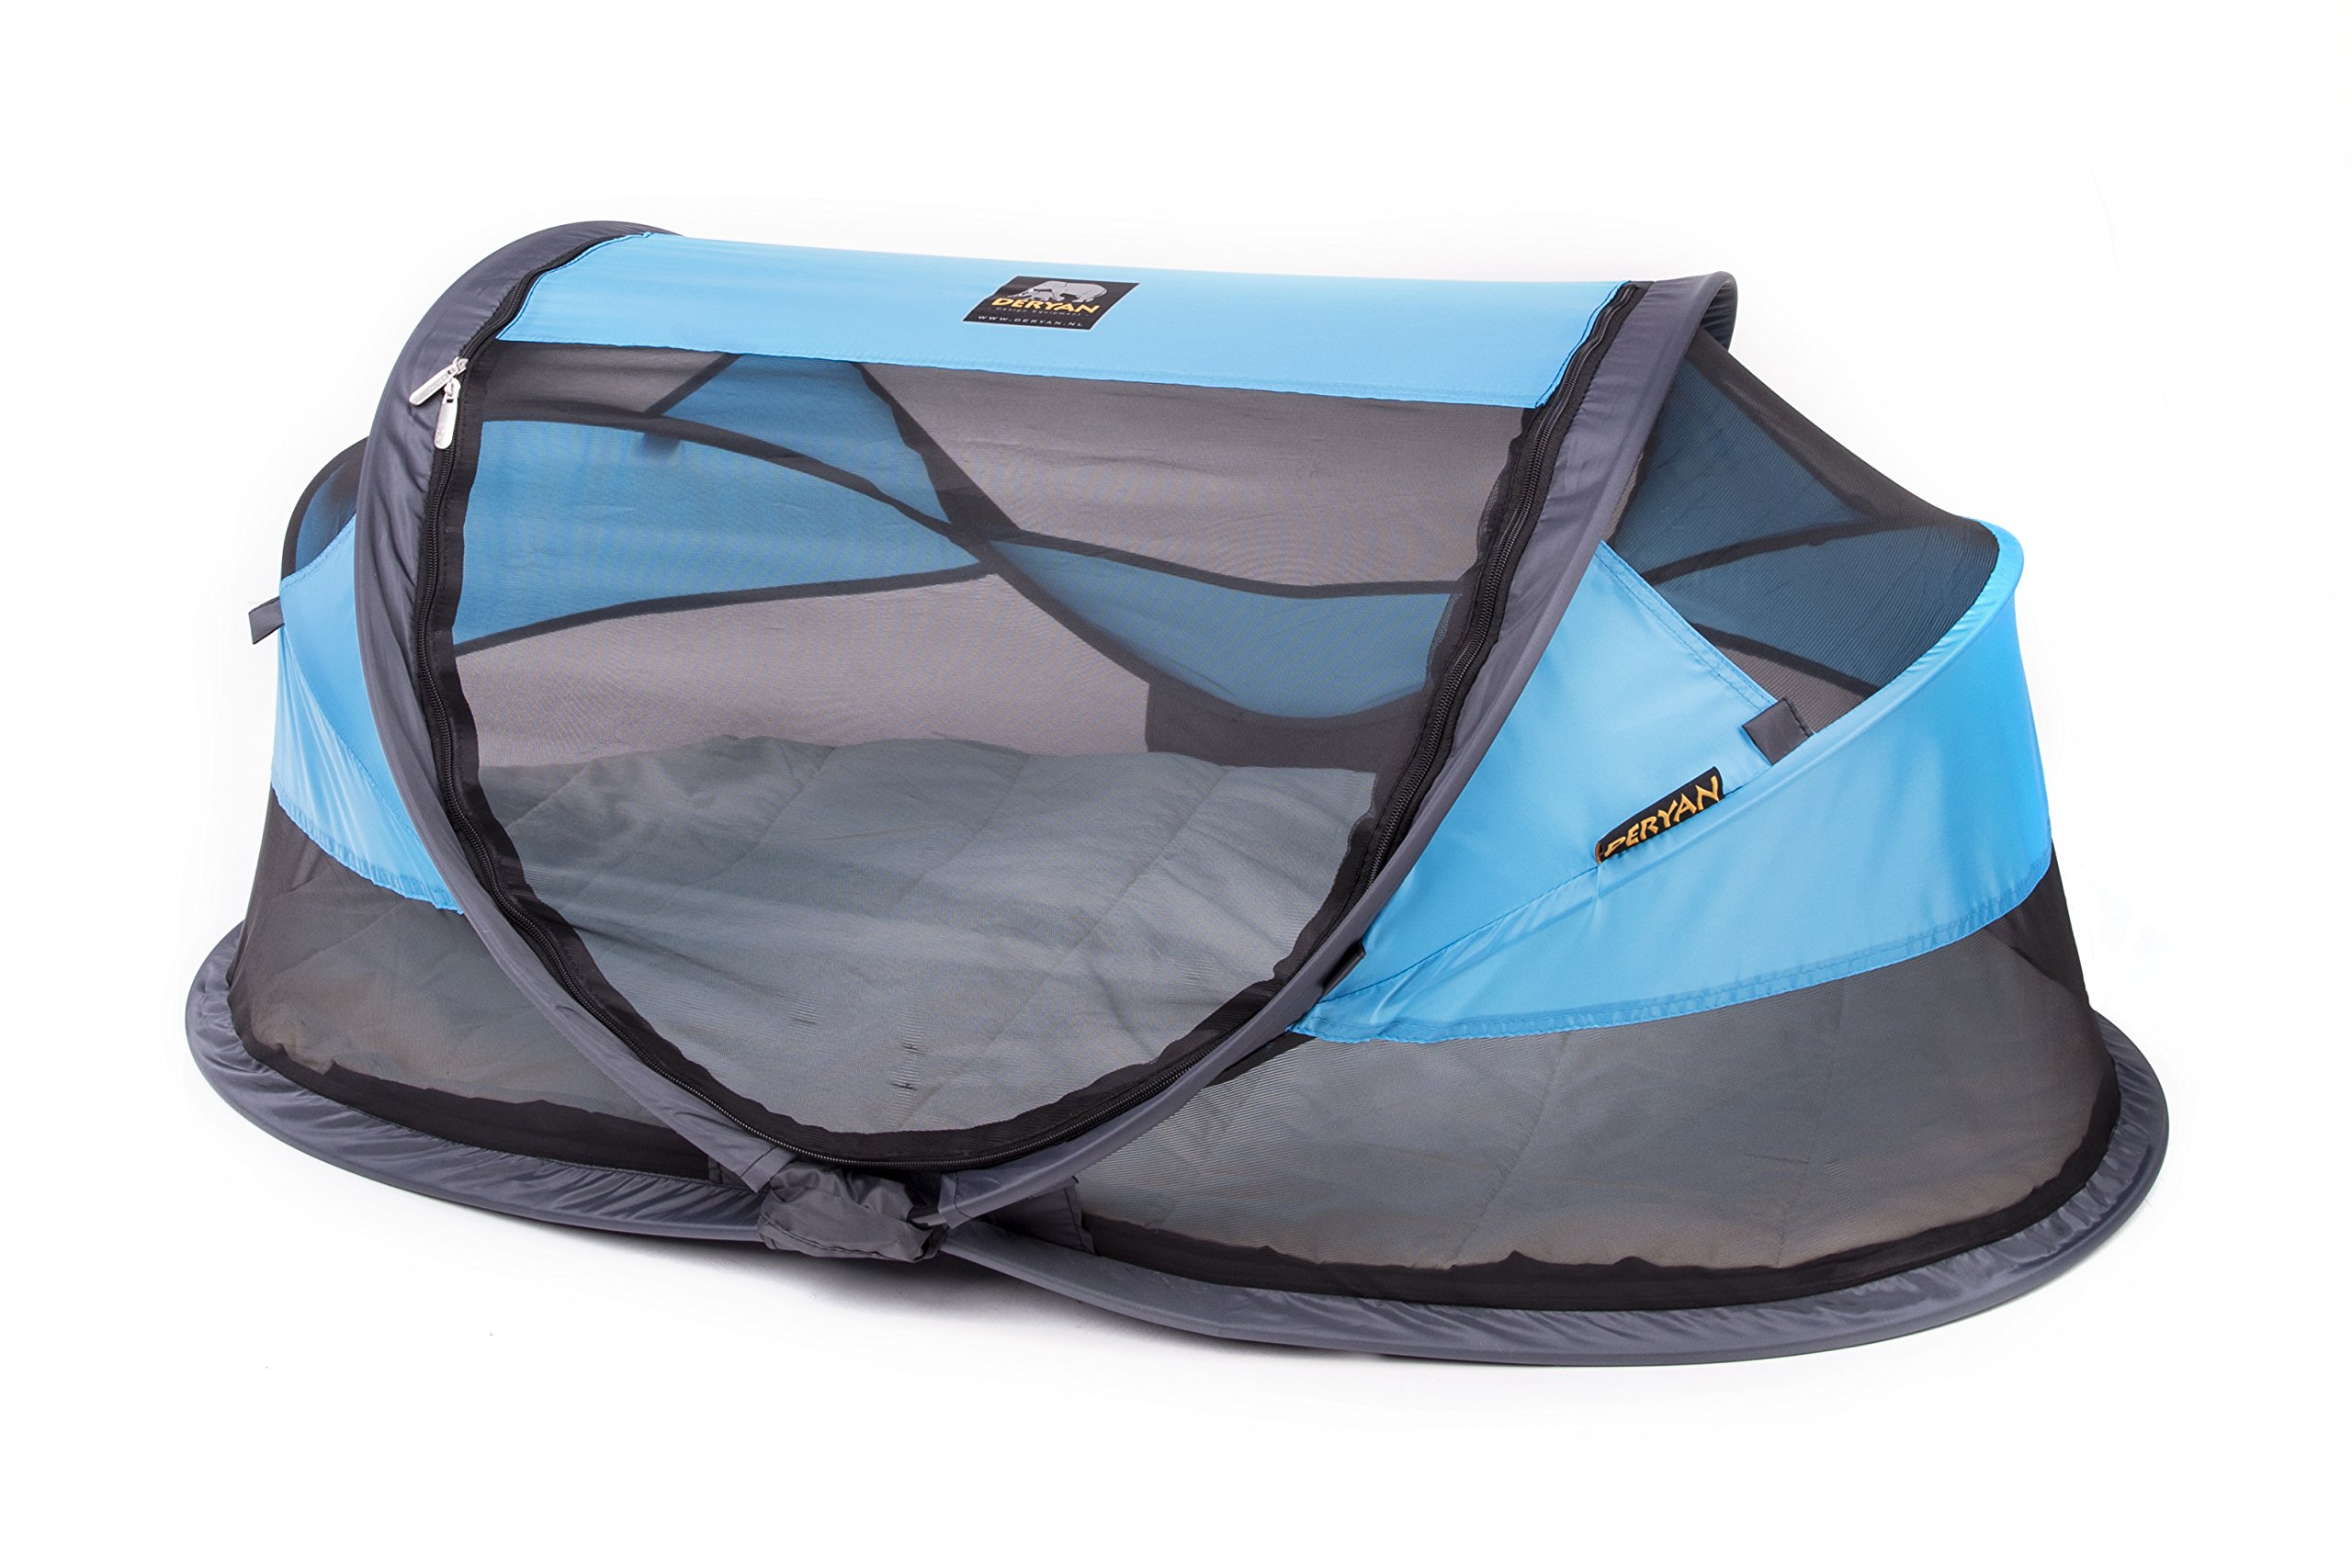 Deryan travel cot / travel cot Baby Luxe travel tent including sleeping mat, self-inflatable air mattress and carrying bag with pop-up built within 2 seconds, Blue Deryan 50% UV Protection and flame retardant fabric Setup in 2 seconds and a anti-musquito net  2